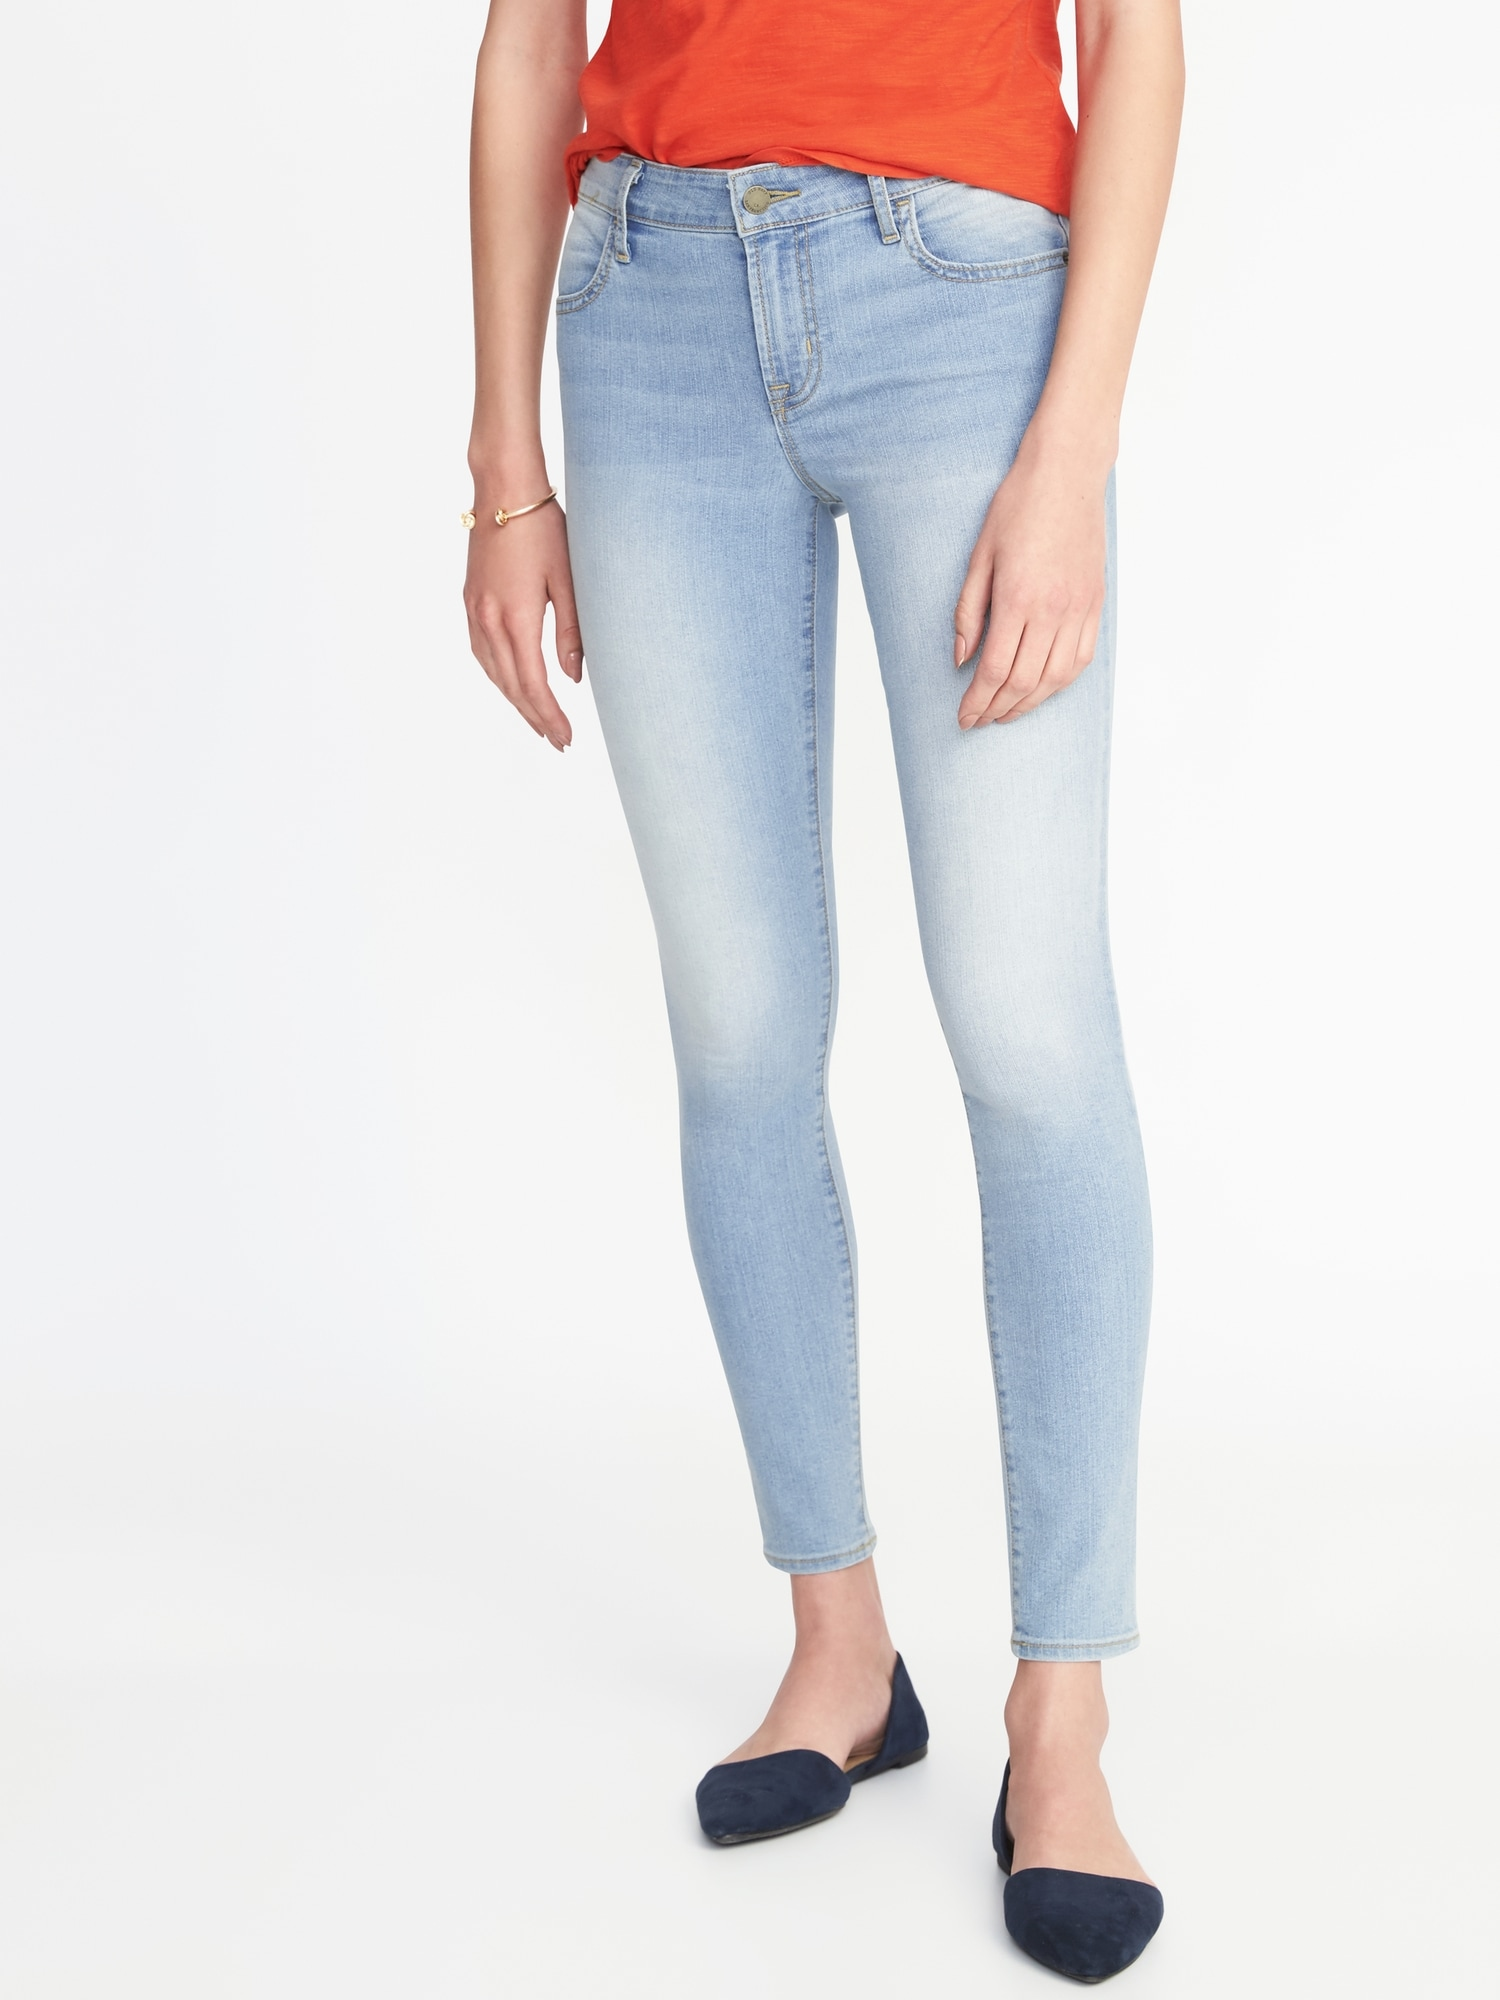 27ab934c5a8 Mid-Rise Super-Skinny Ankle Jeans for Women | Old Navy